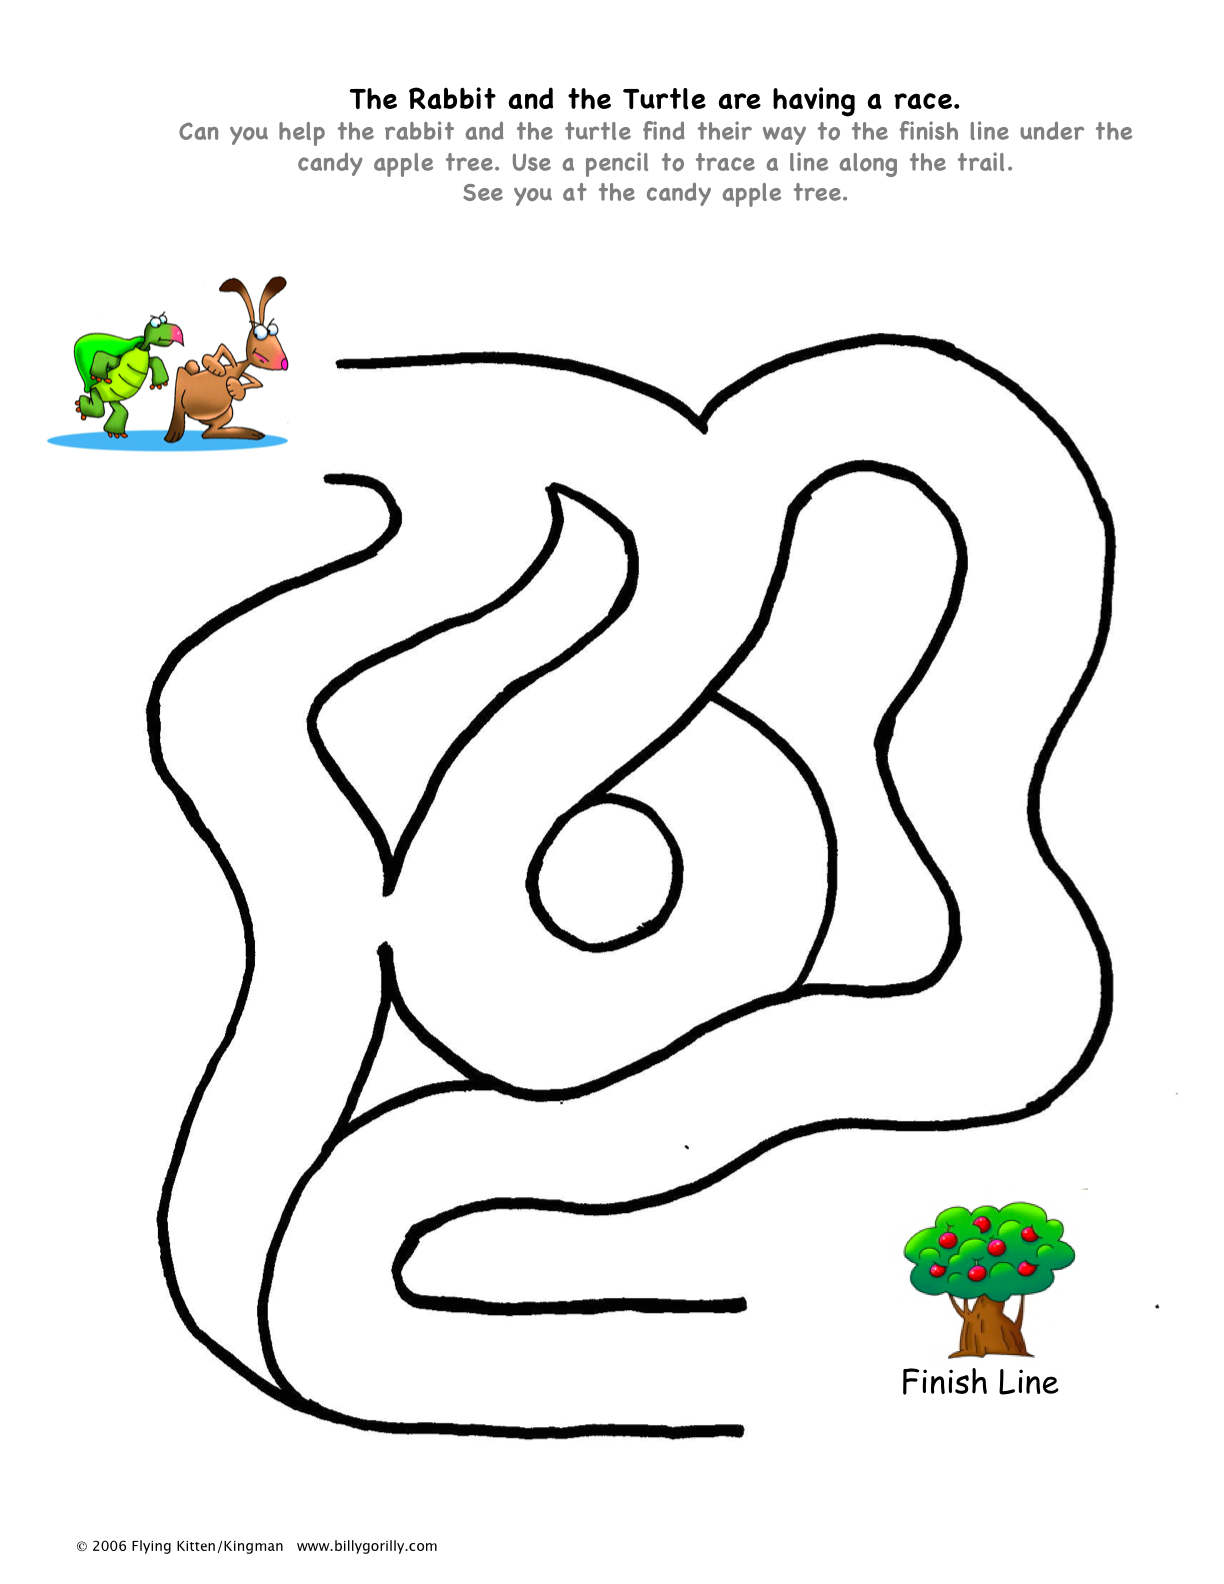 ... (eg give instructions for following a path through a simple maze